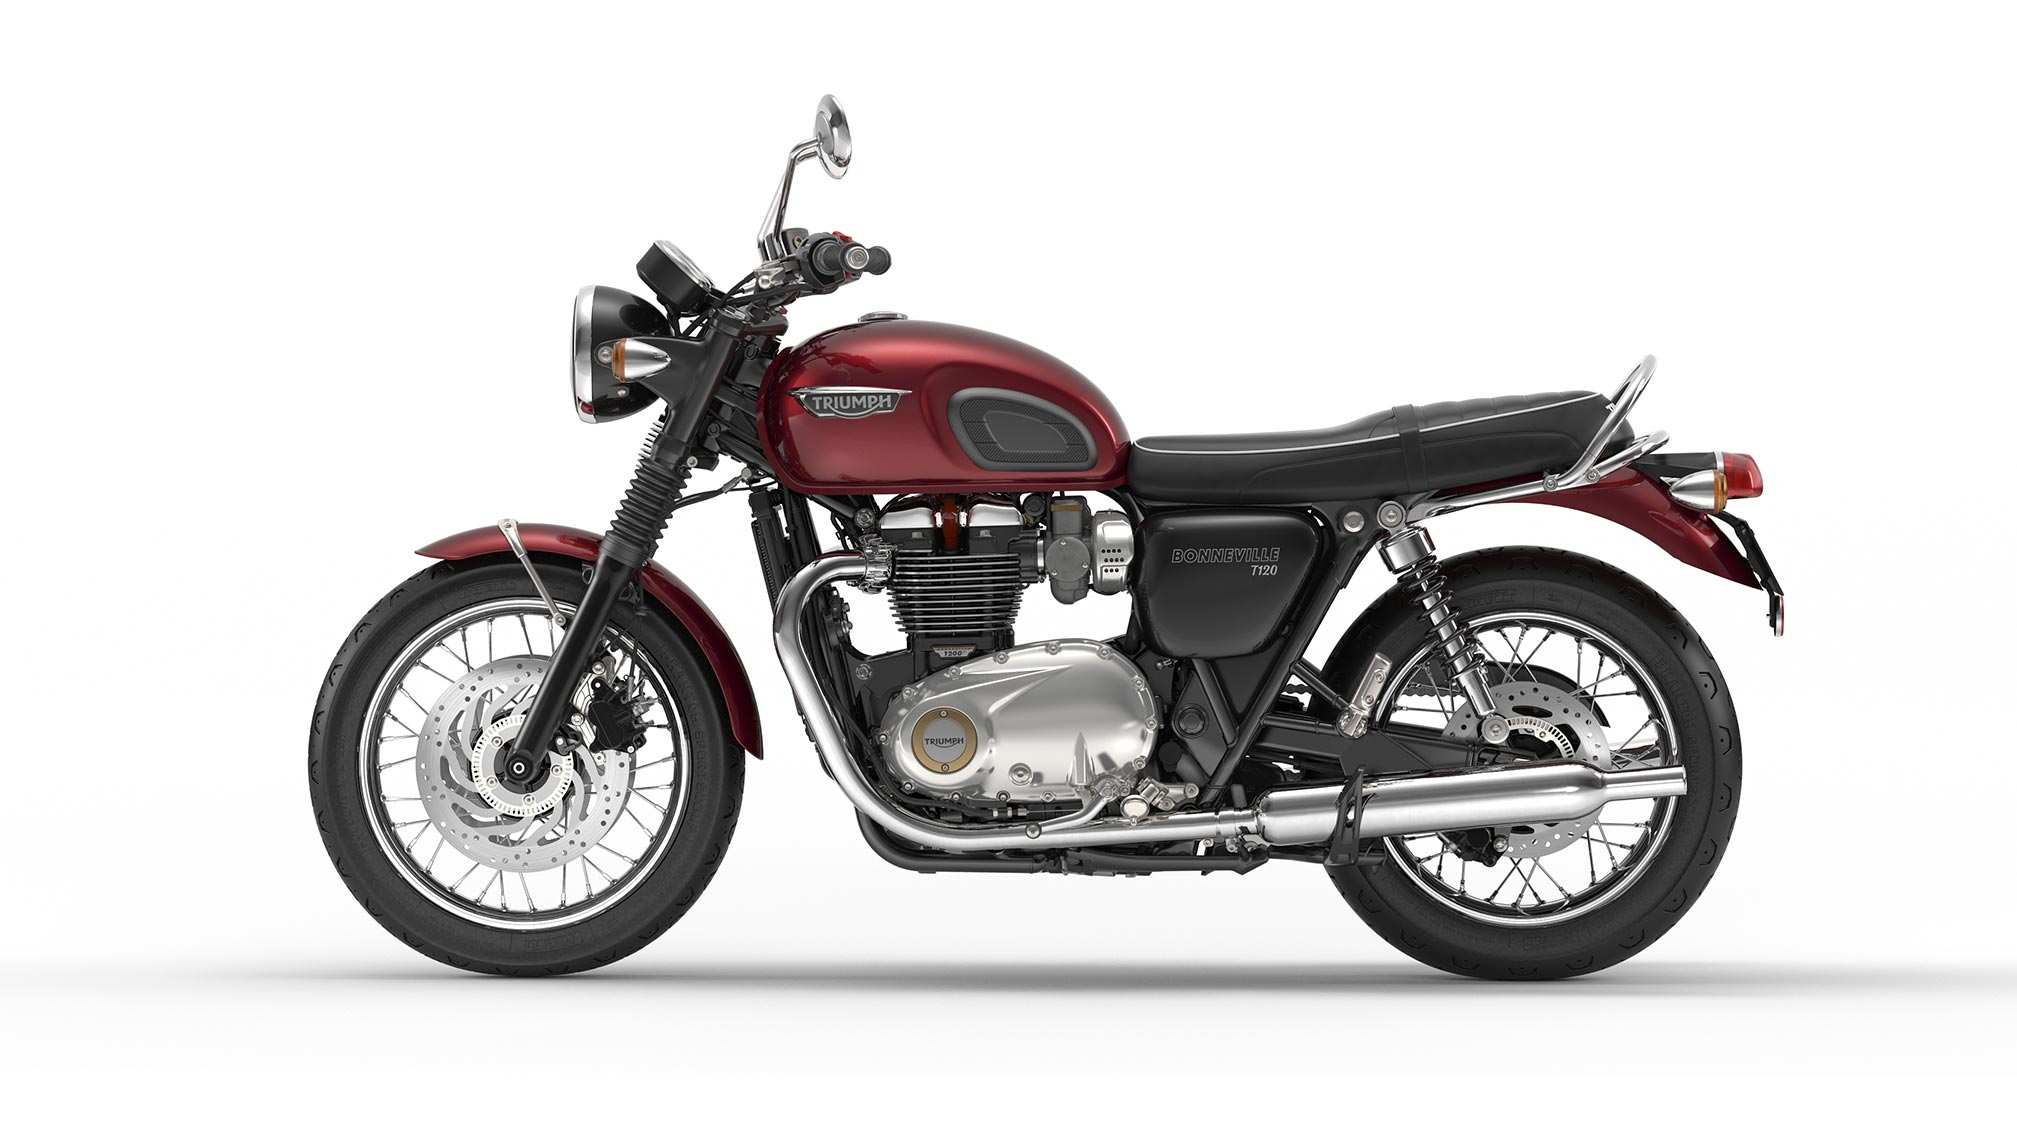 2017 triumph bonneville t120 review. Black Bedroom Furniture Sets. Home Design Ideas